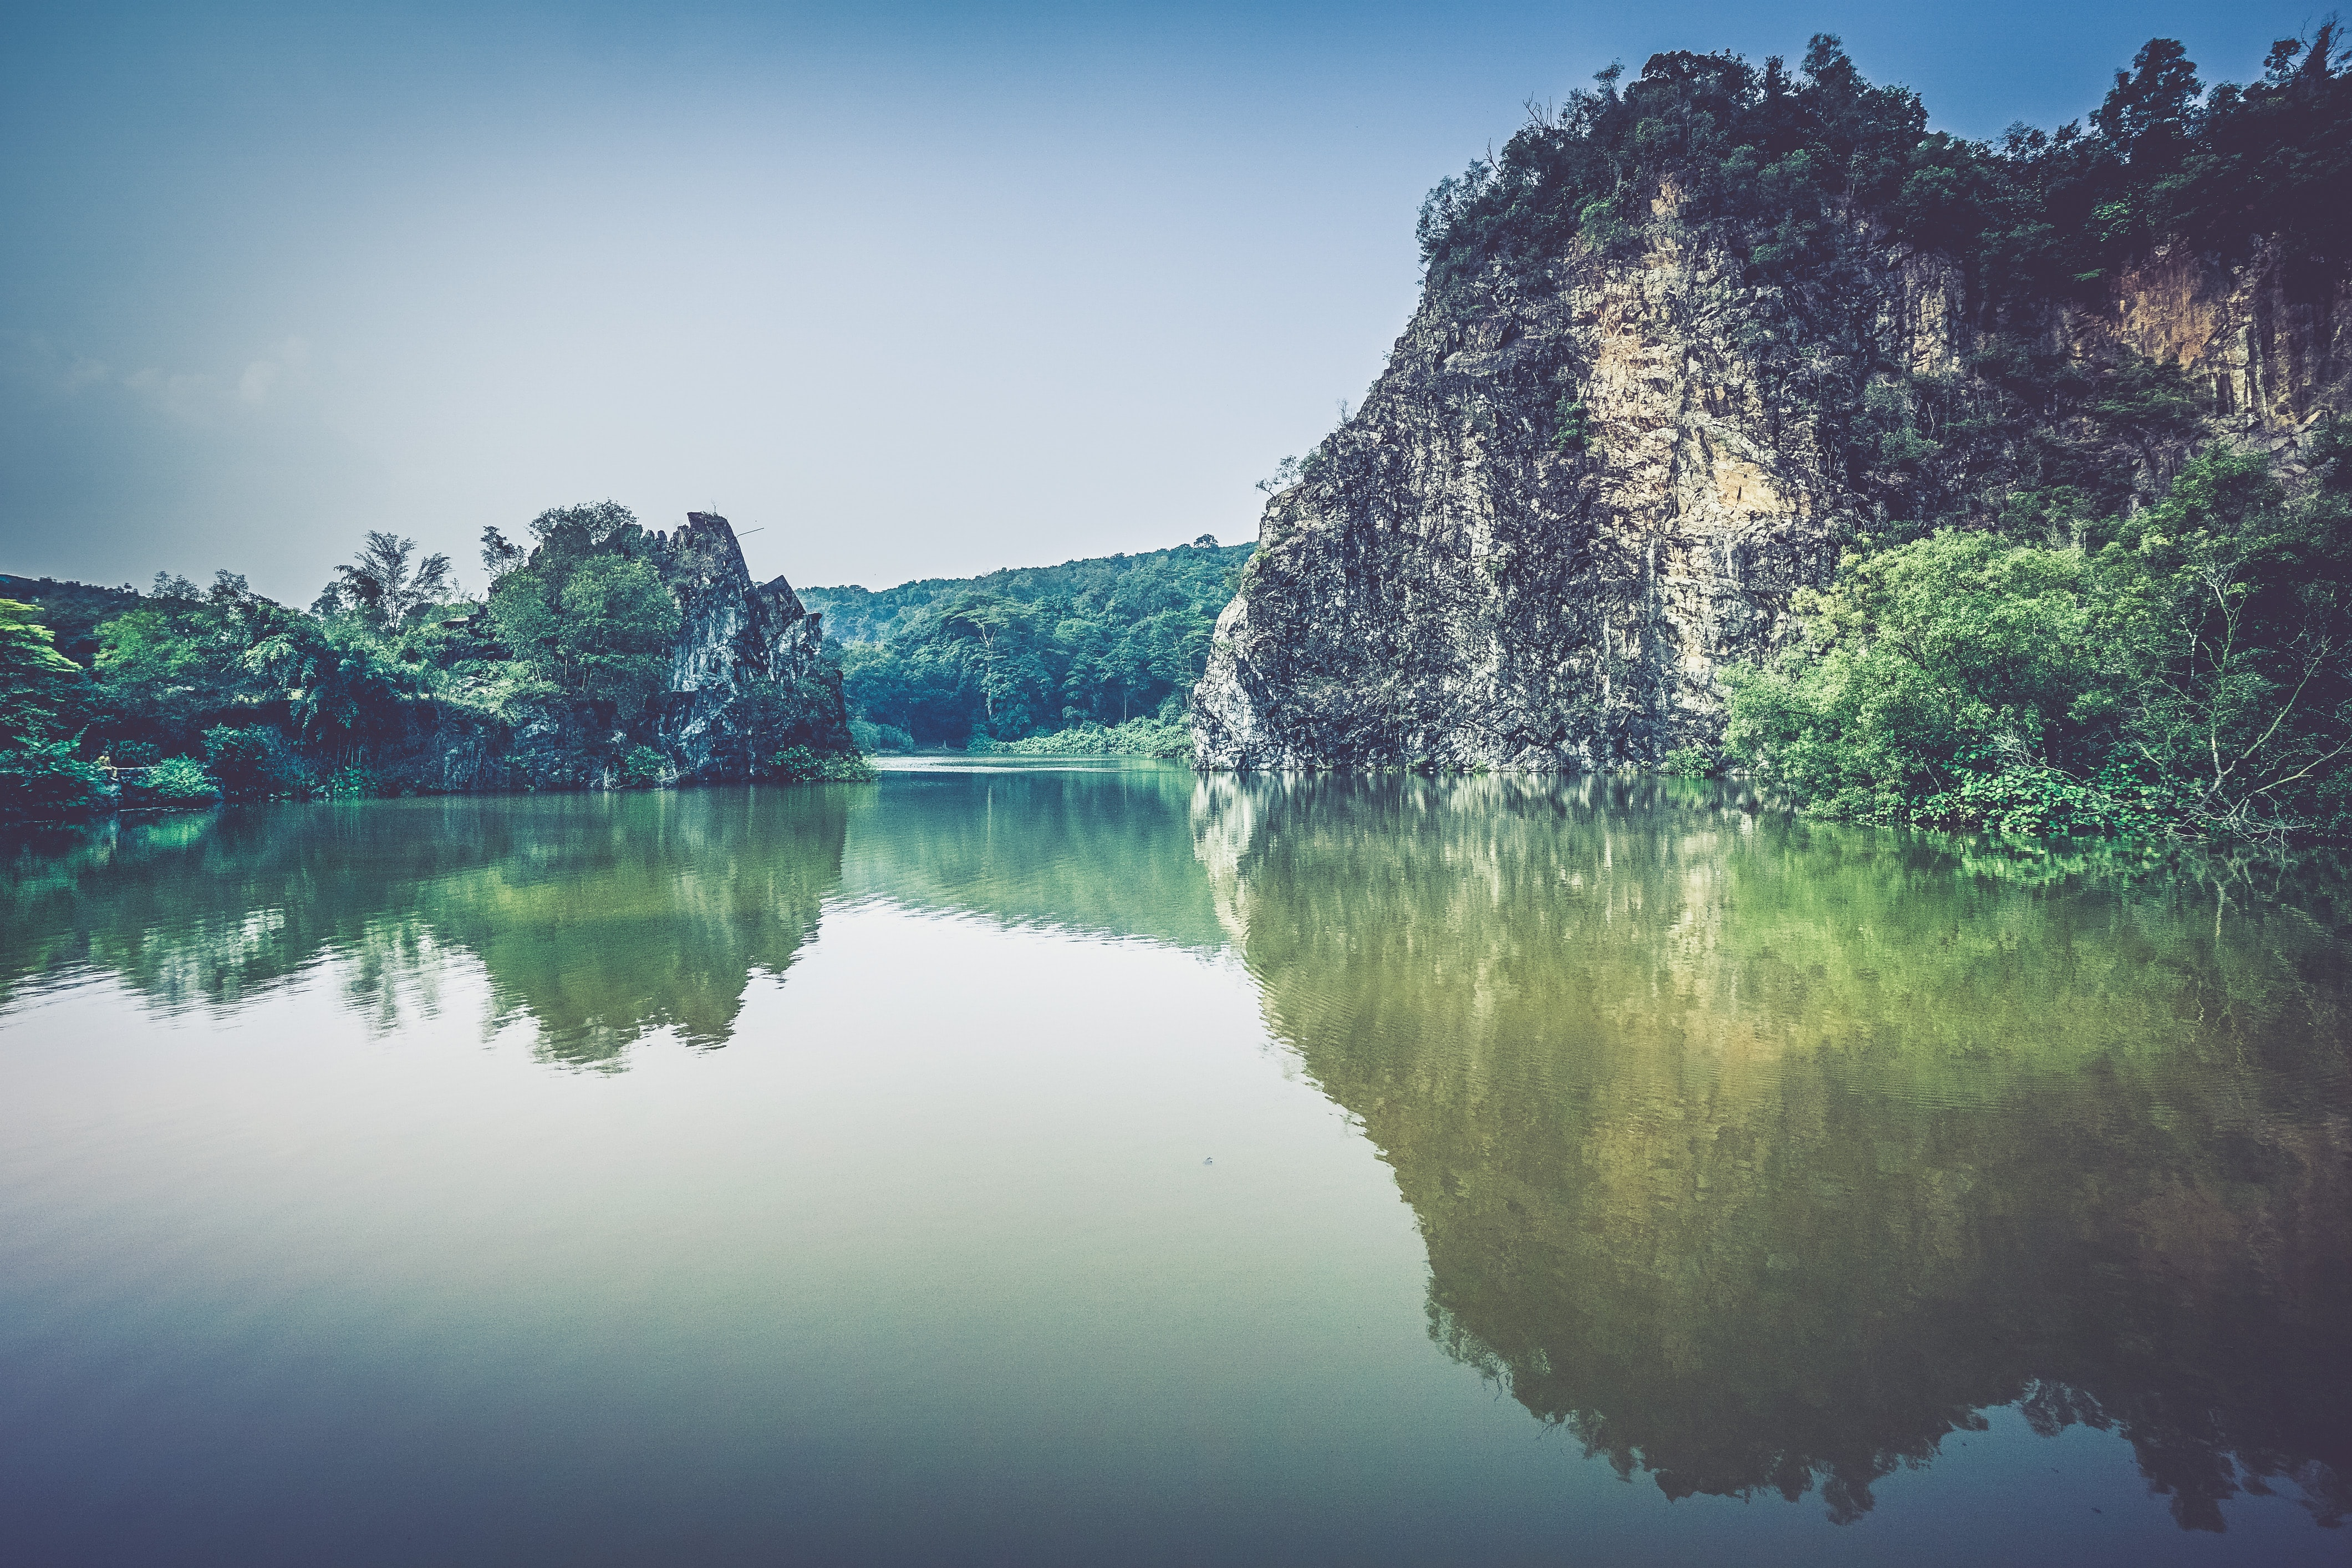 gray rock formation with plants near body of water